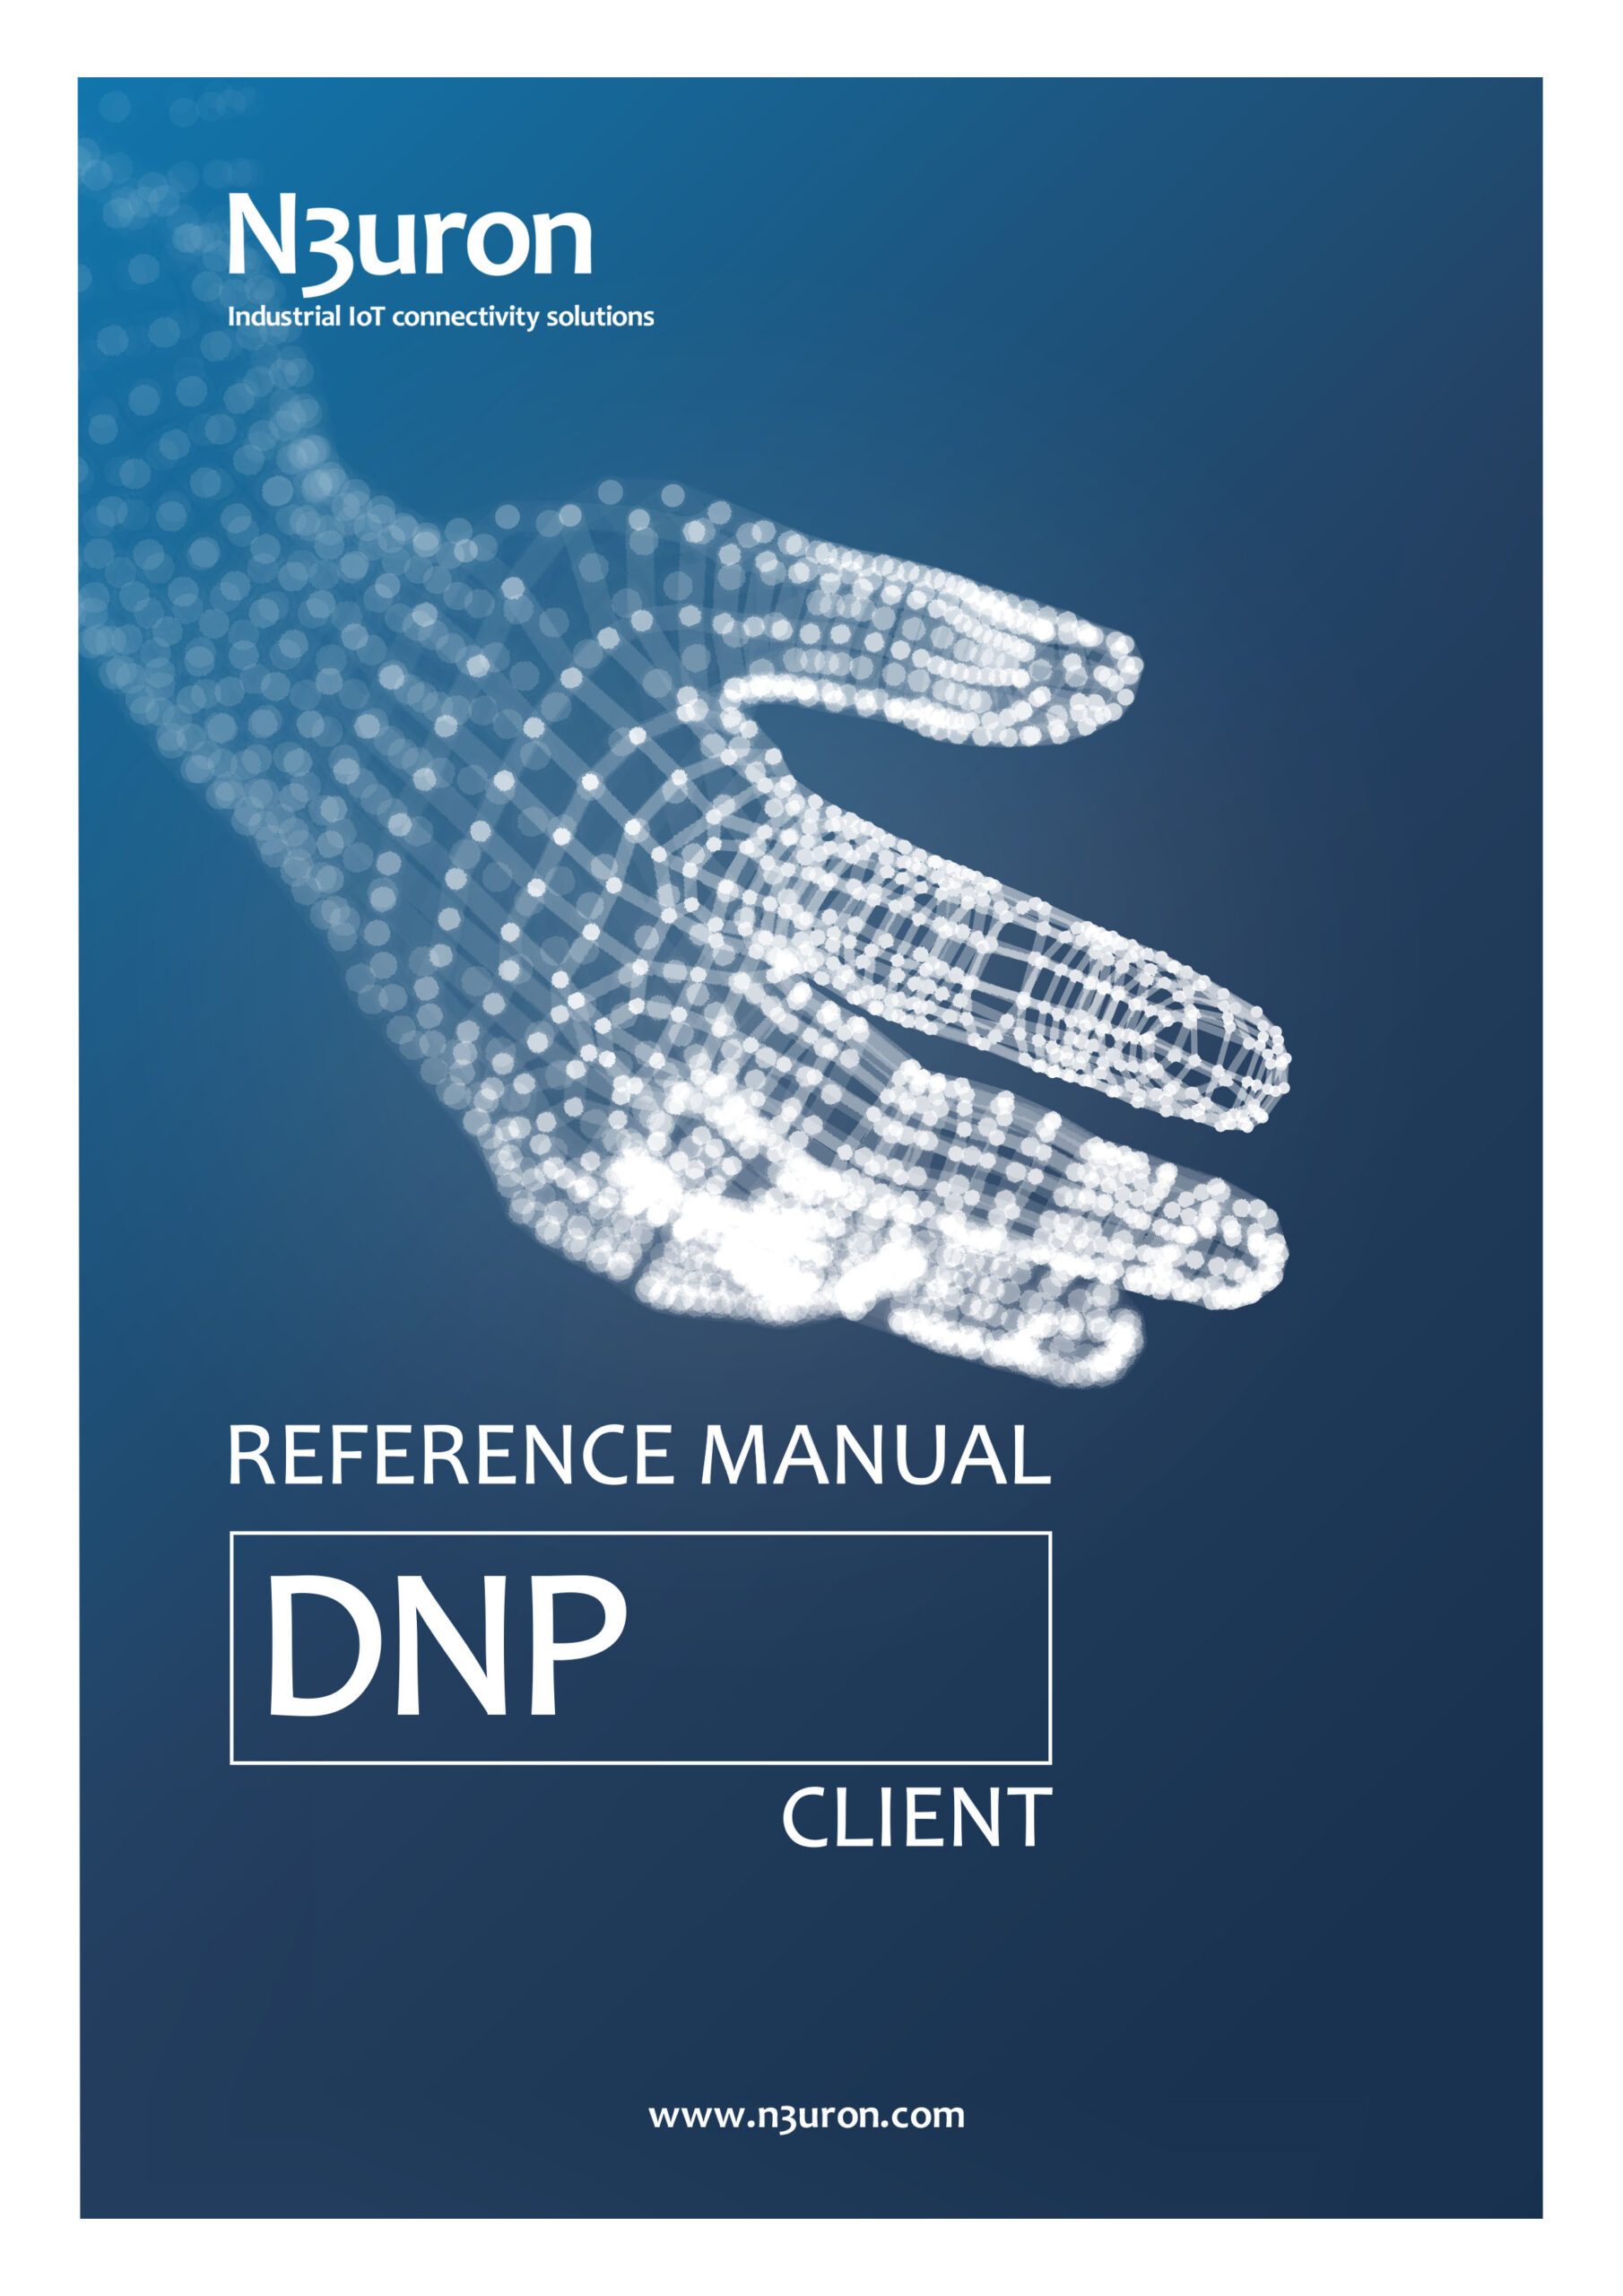 N3uron Industrial IoT communication platform DNP Client Manual Cover.